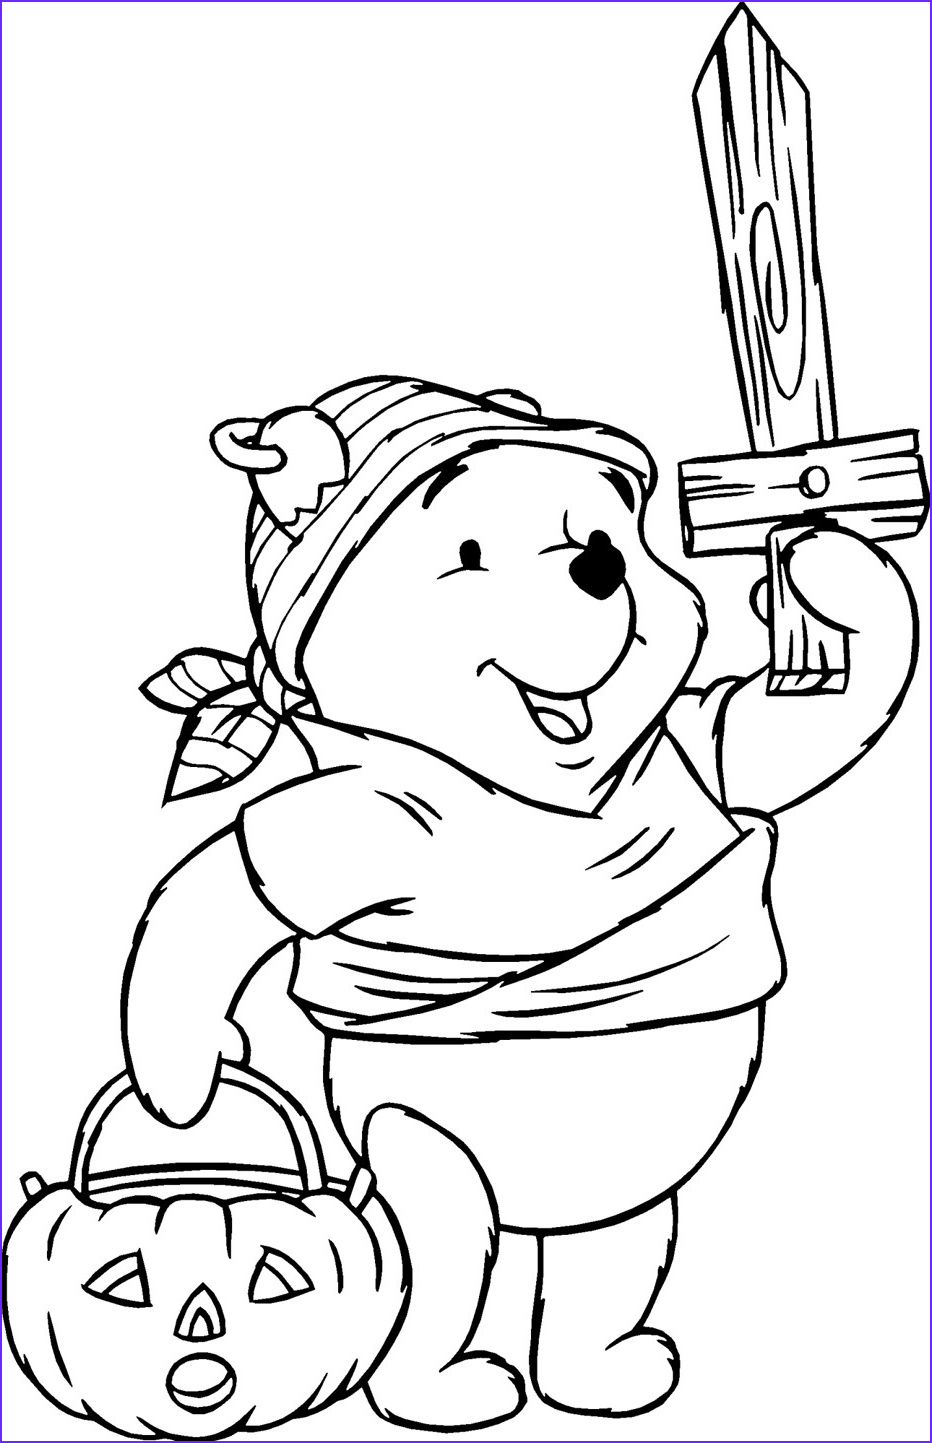 Halloween Coloring Pages Cool Photography 24 Free Printable Halloween Coloring Pages for Kids